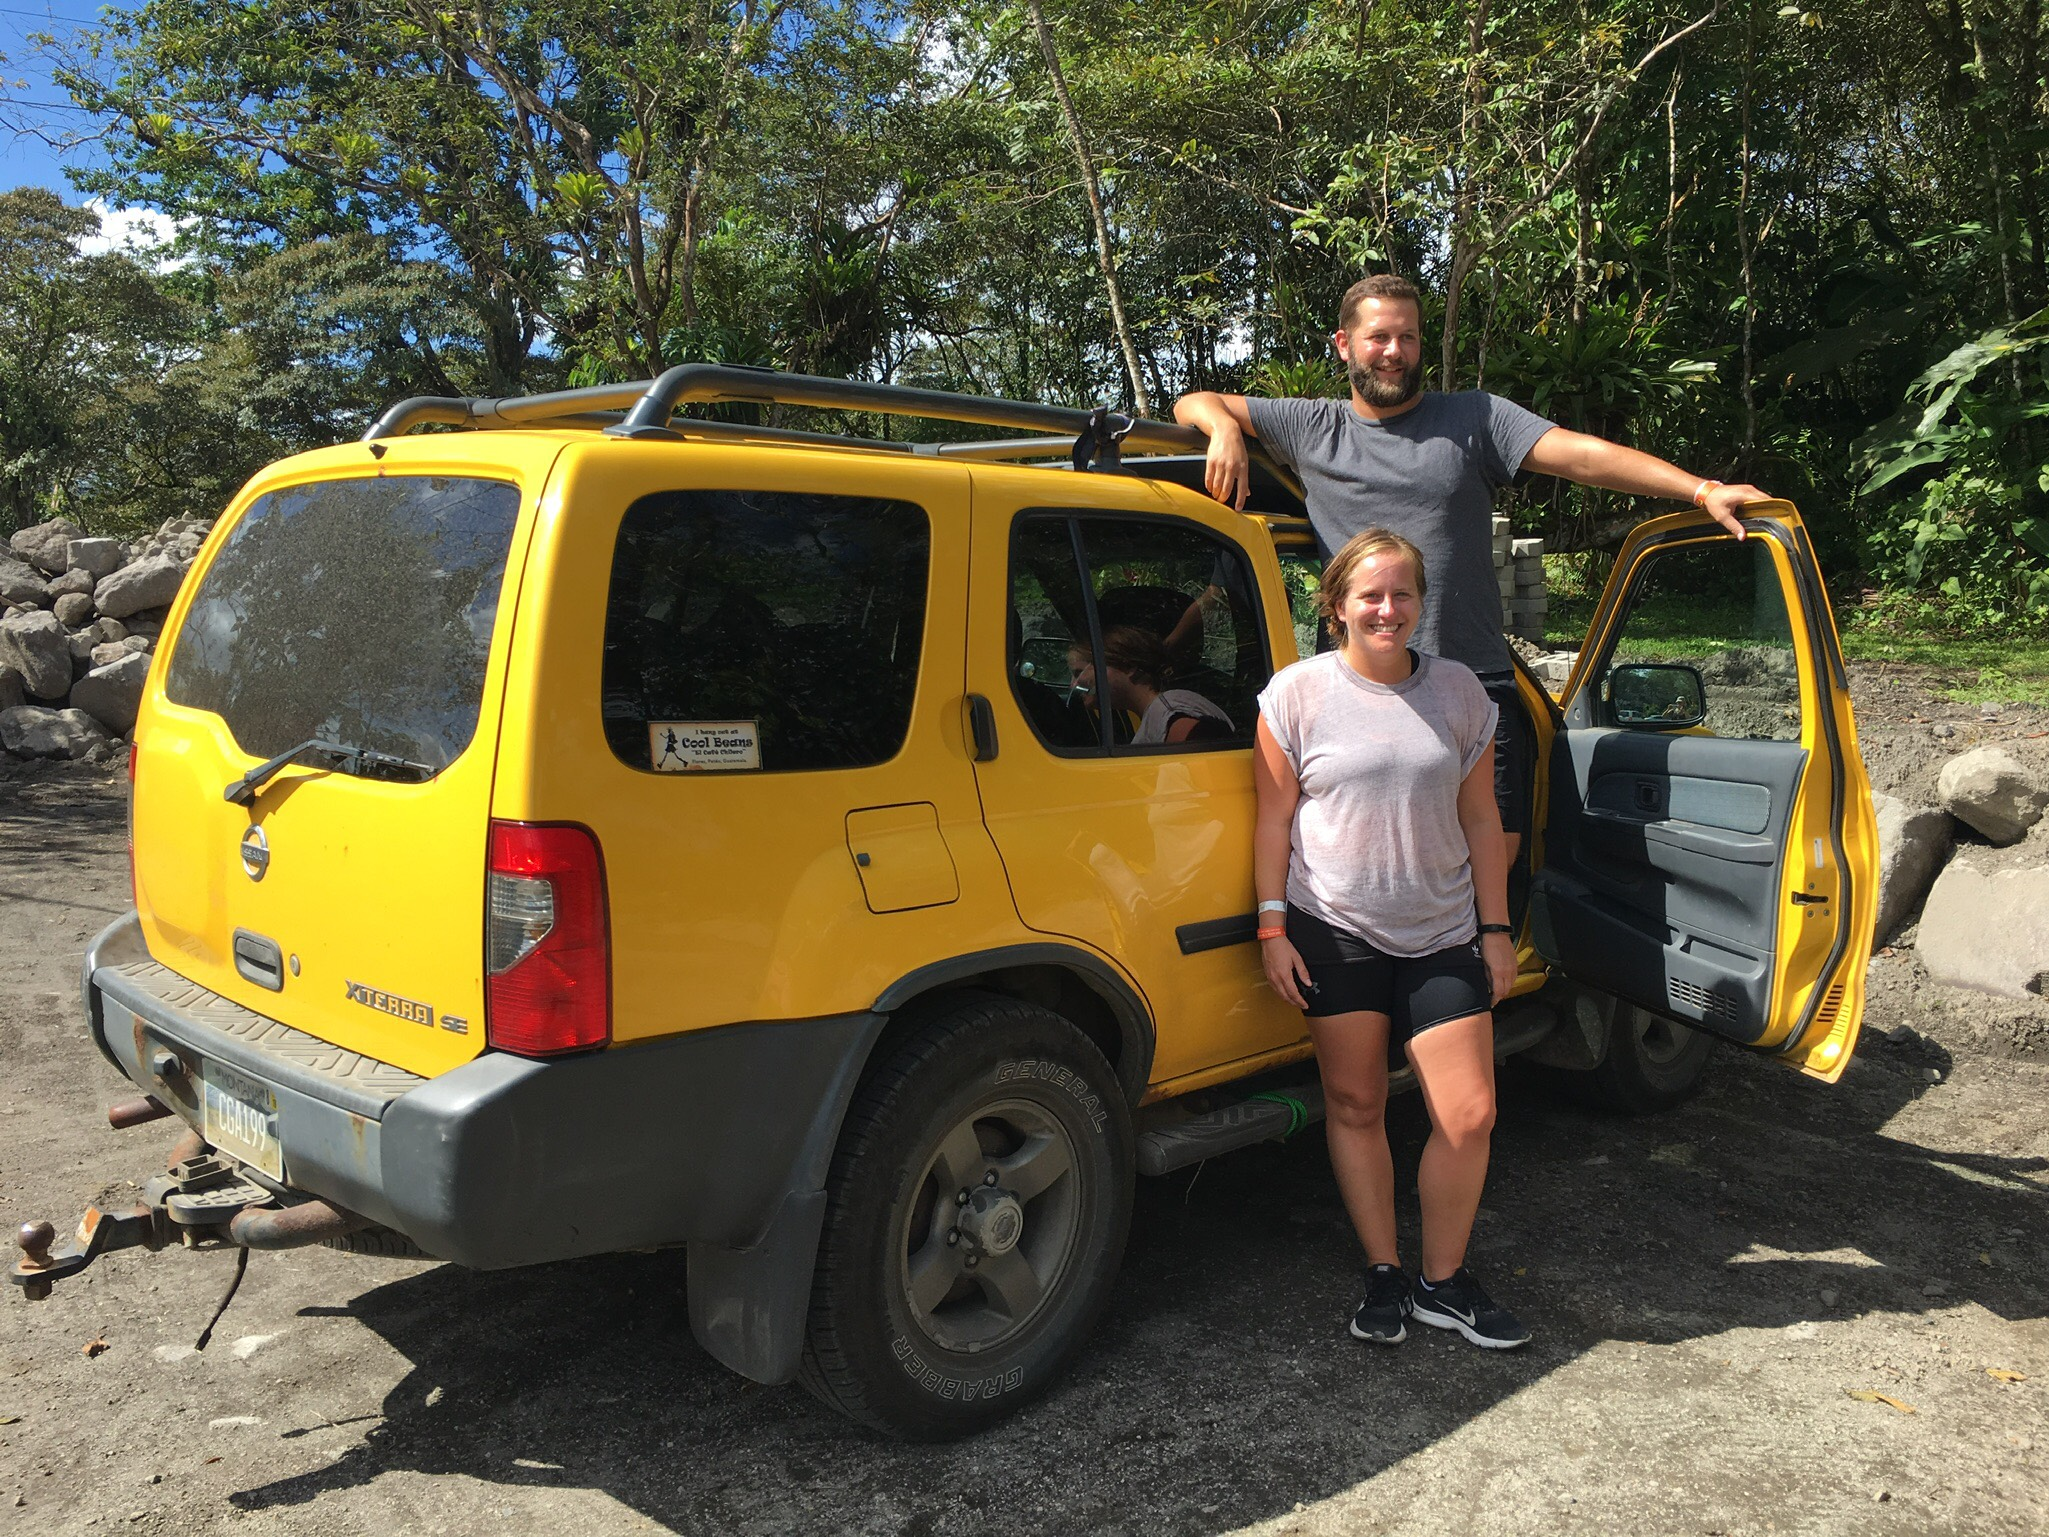 Gary-and-Naomi-British-visitors-to-America-bought-SUV-ute-4x4-for-cross-border-central-american-road-trip-overland-journey